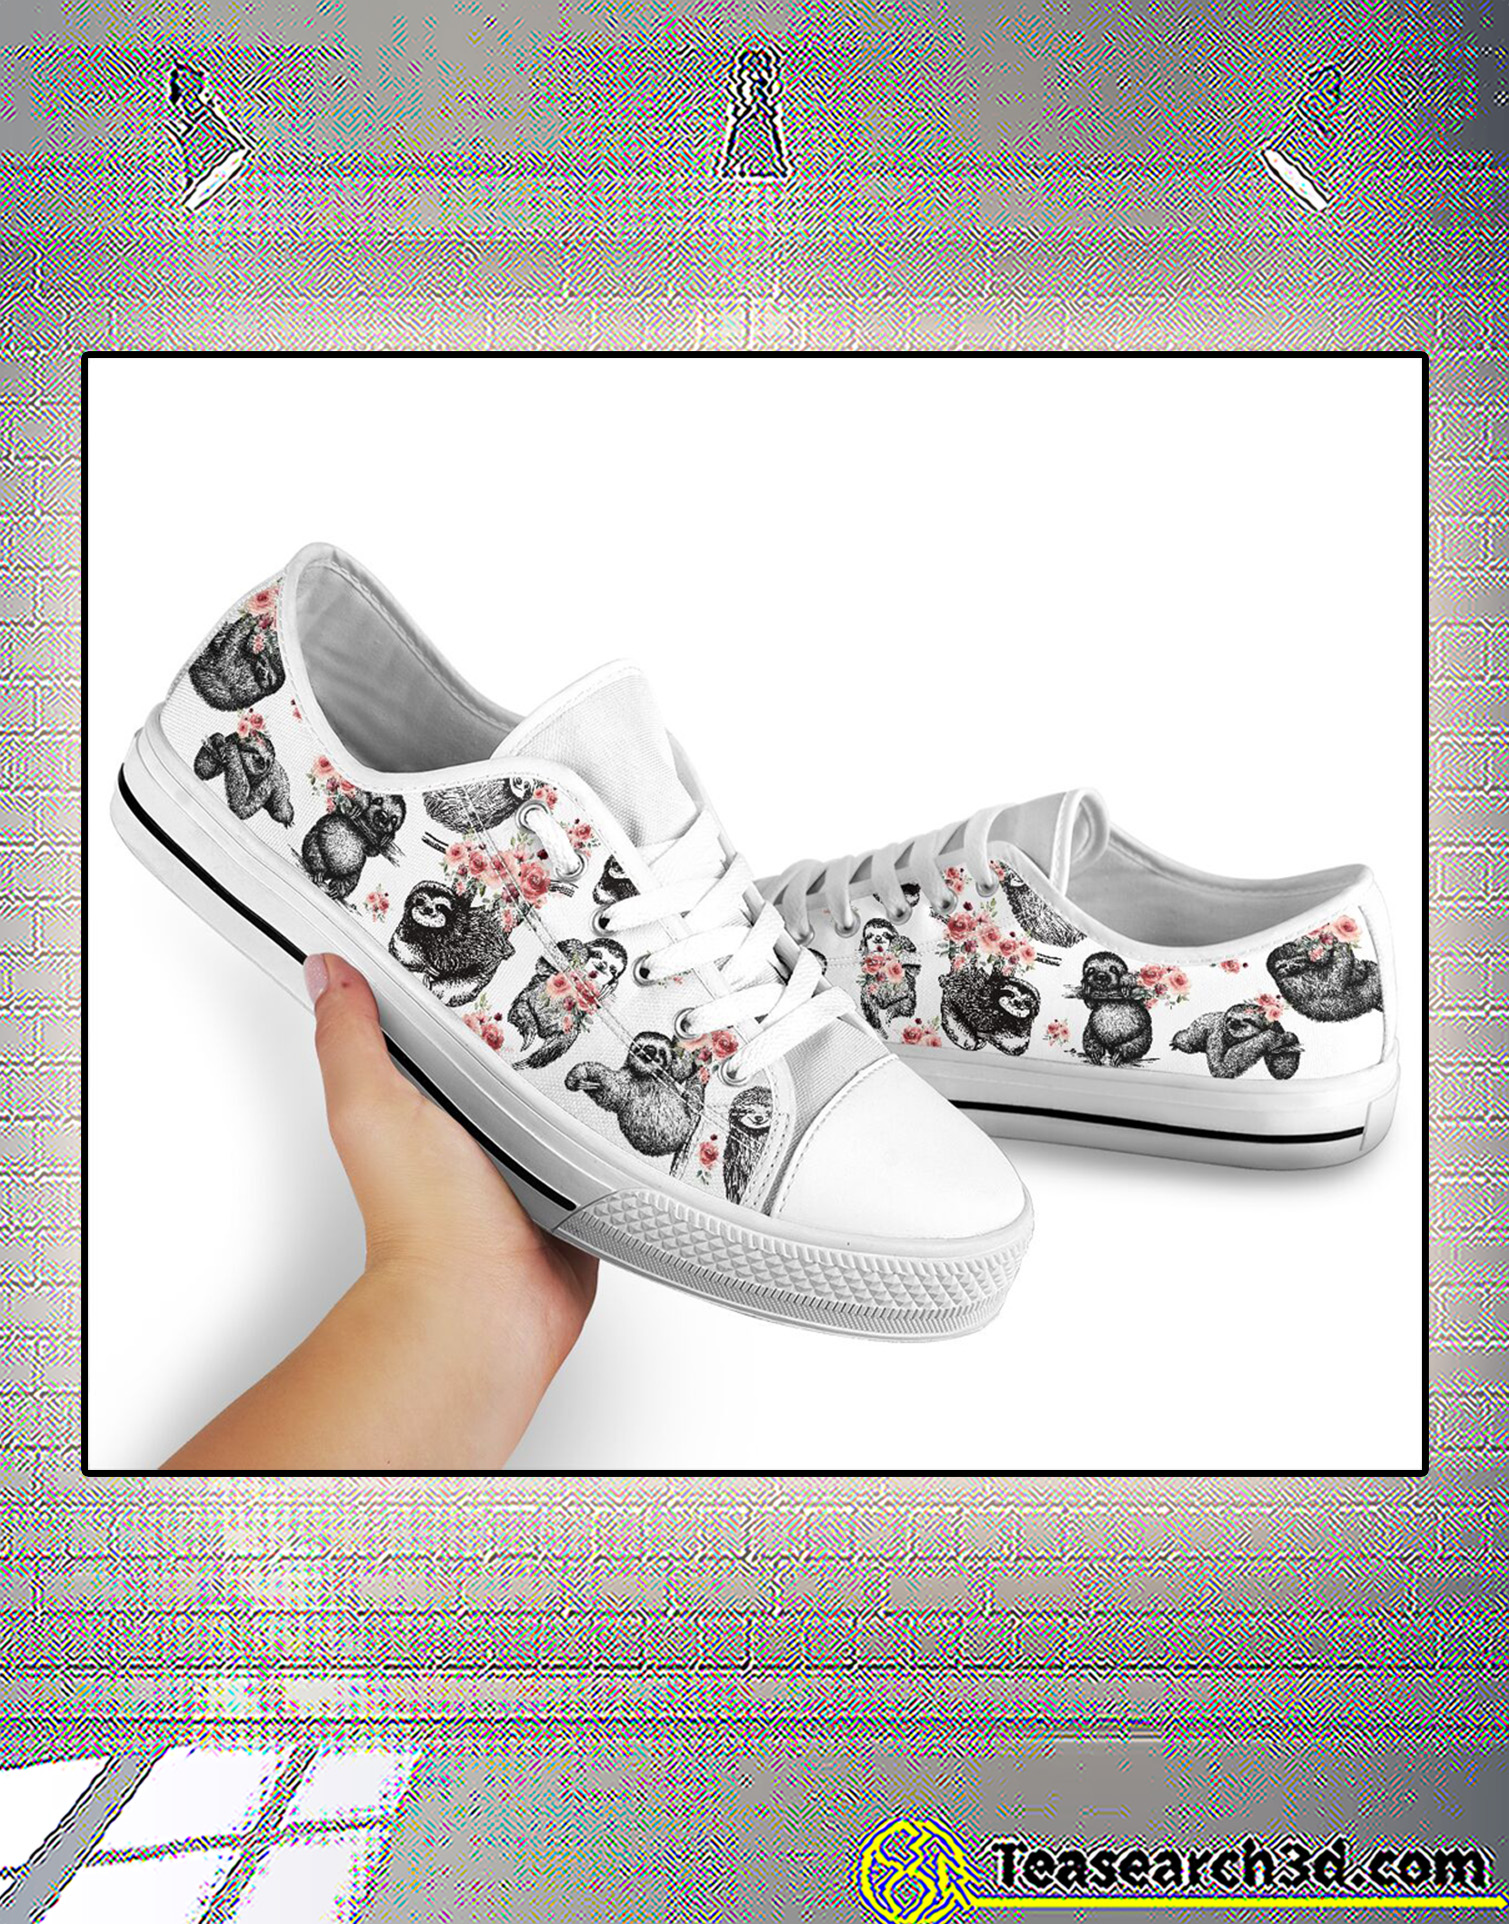 Sloth and flowers low top shoe